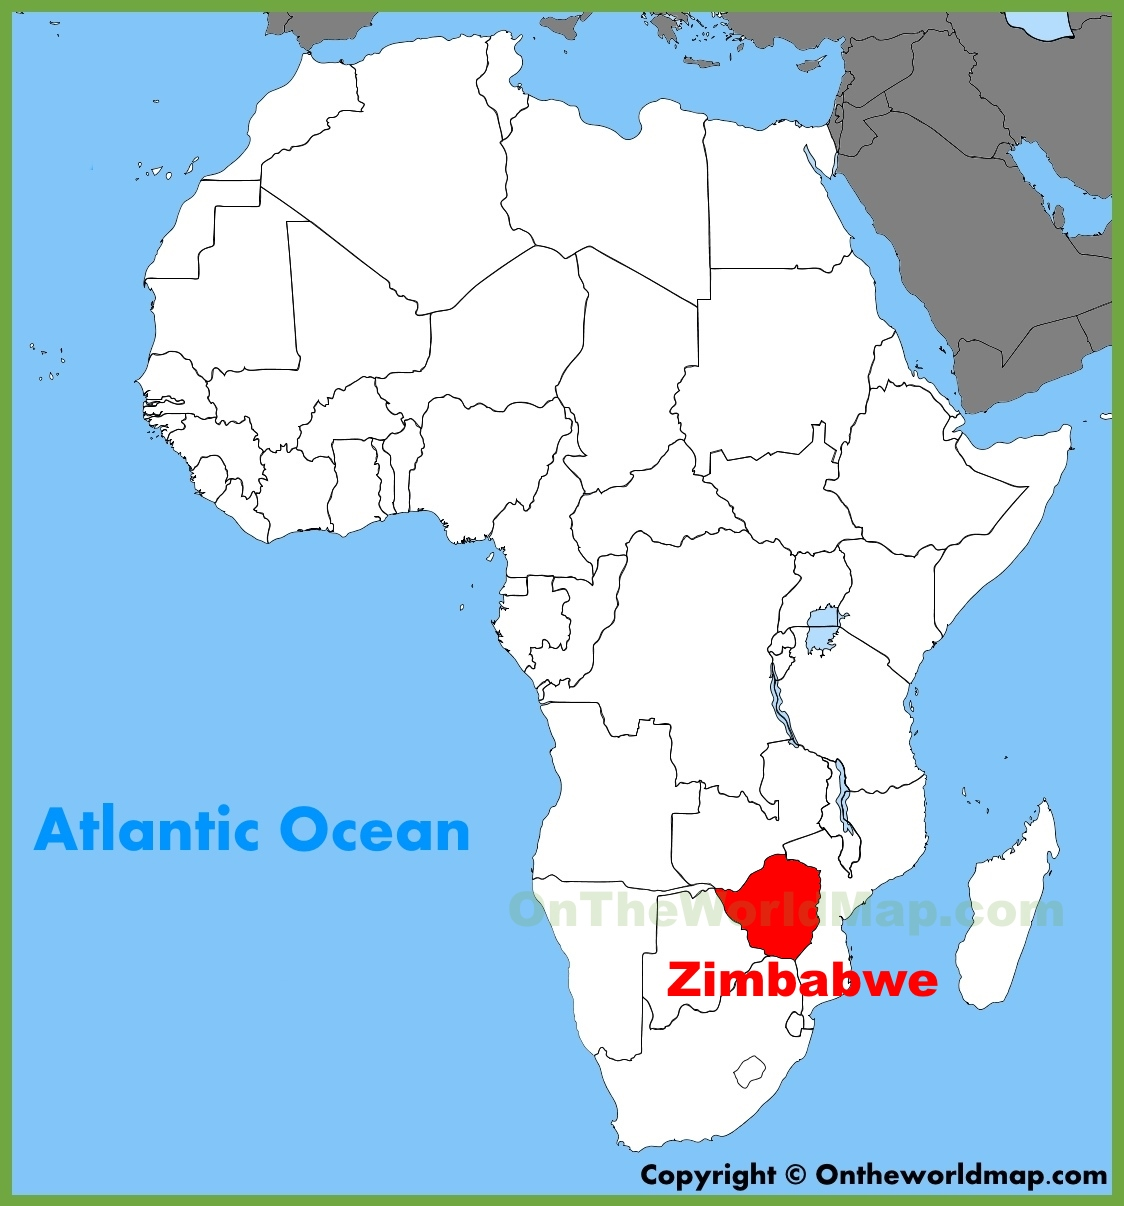 Zimbabwe location on the Africa map